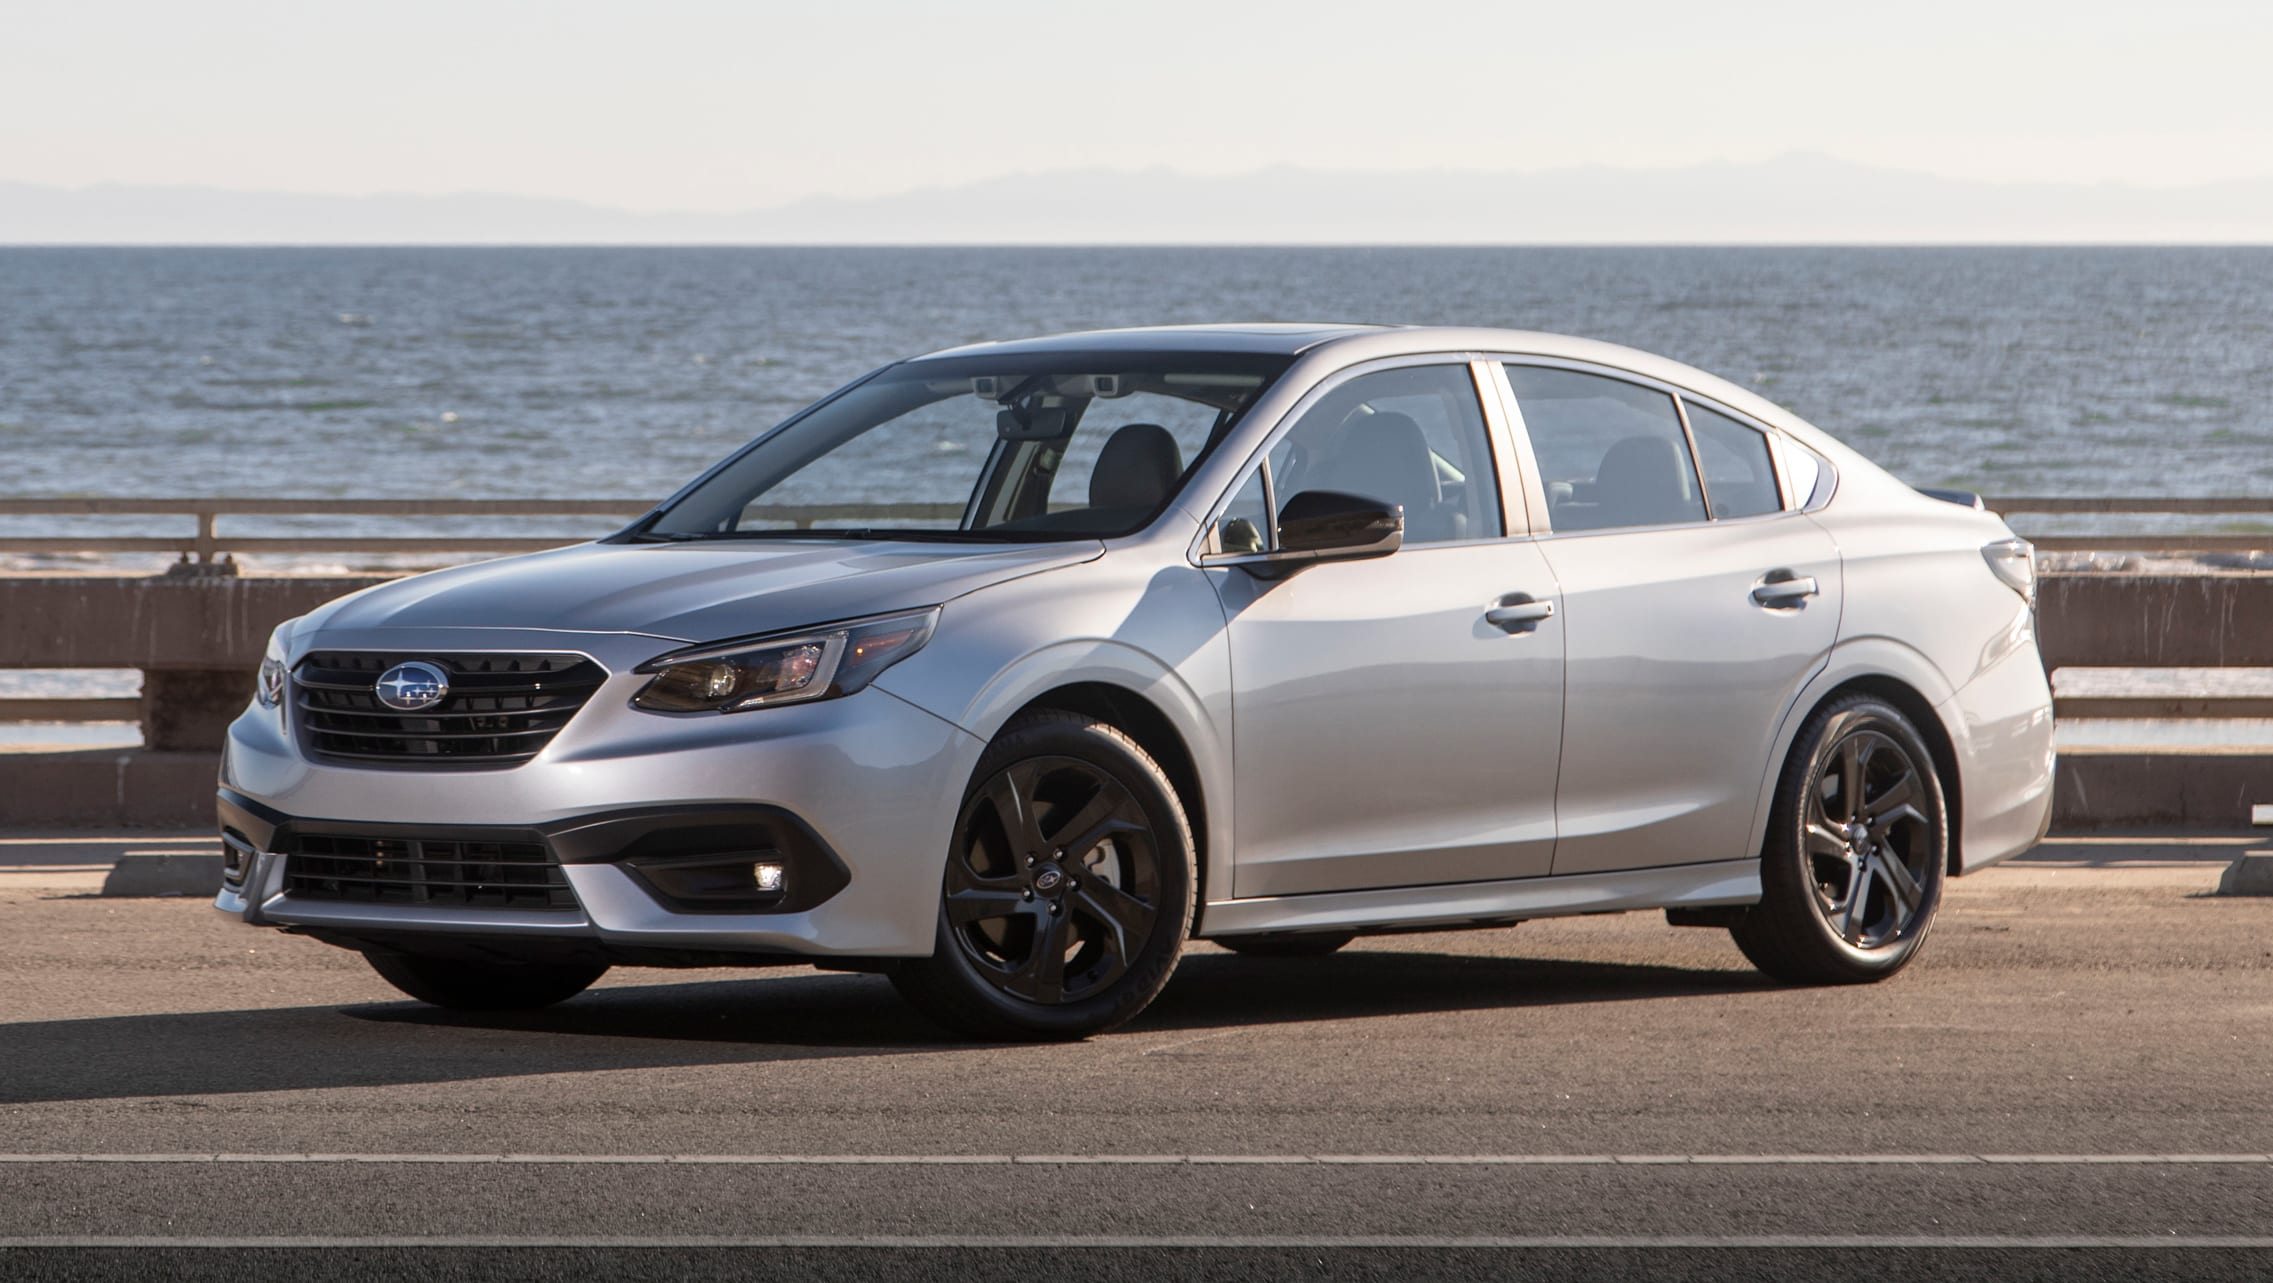 new subaru liberty 2021 could be the latest casualty of australia u0026 39 s suv-obsessed market